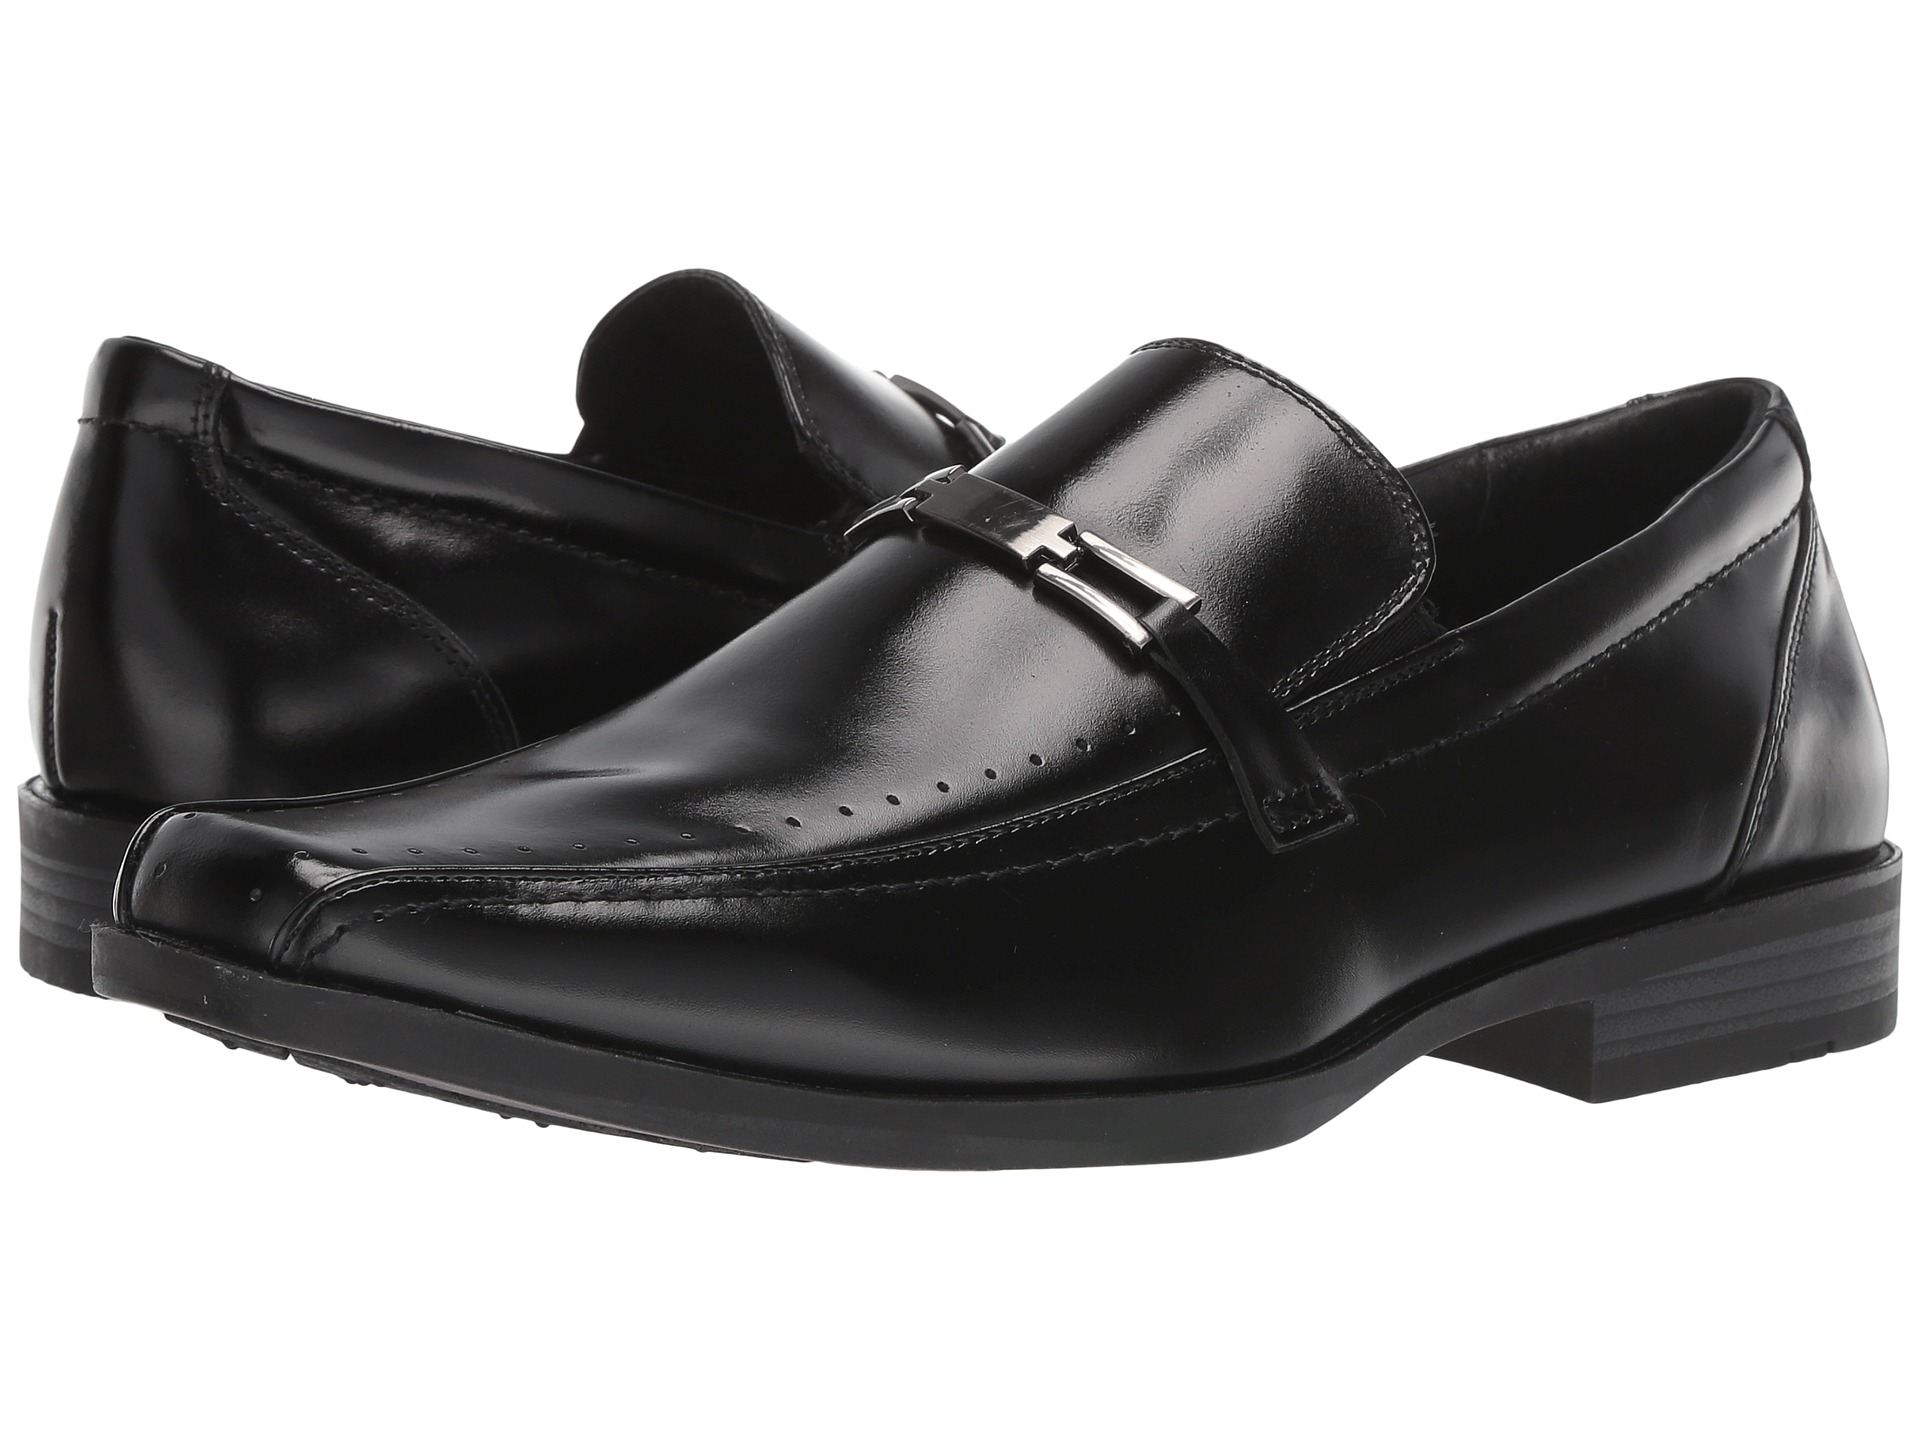 Mens Dress Shoes Photo Album - Fashion Trends and Models